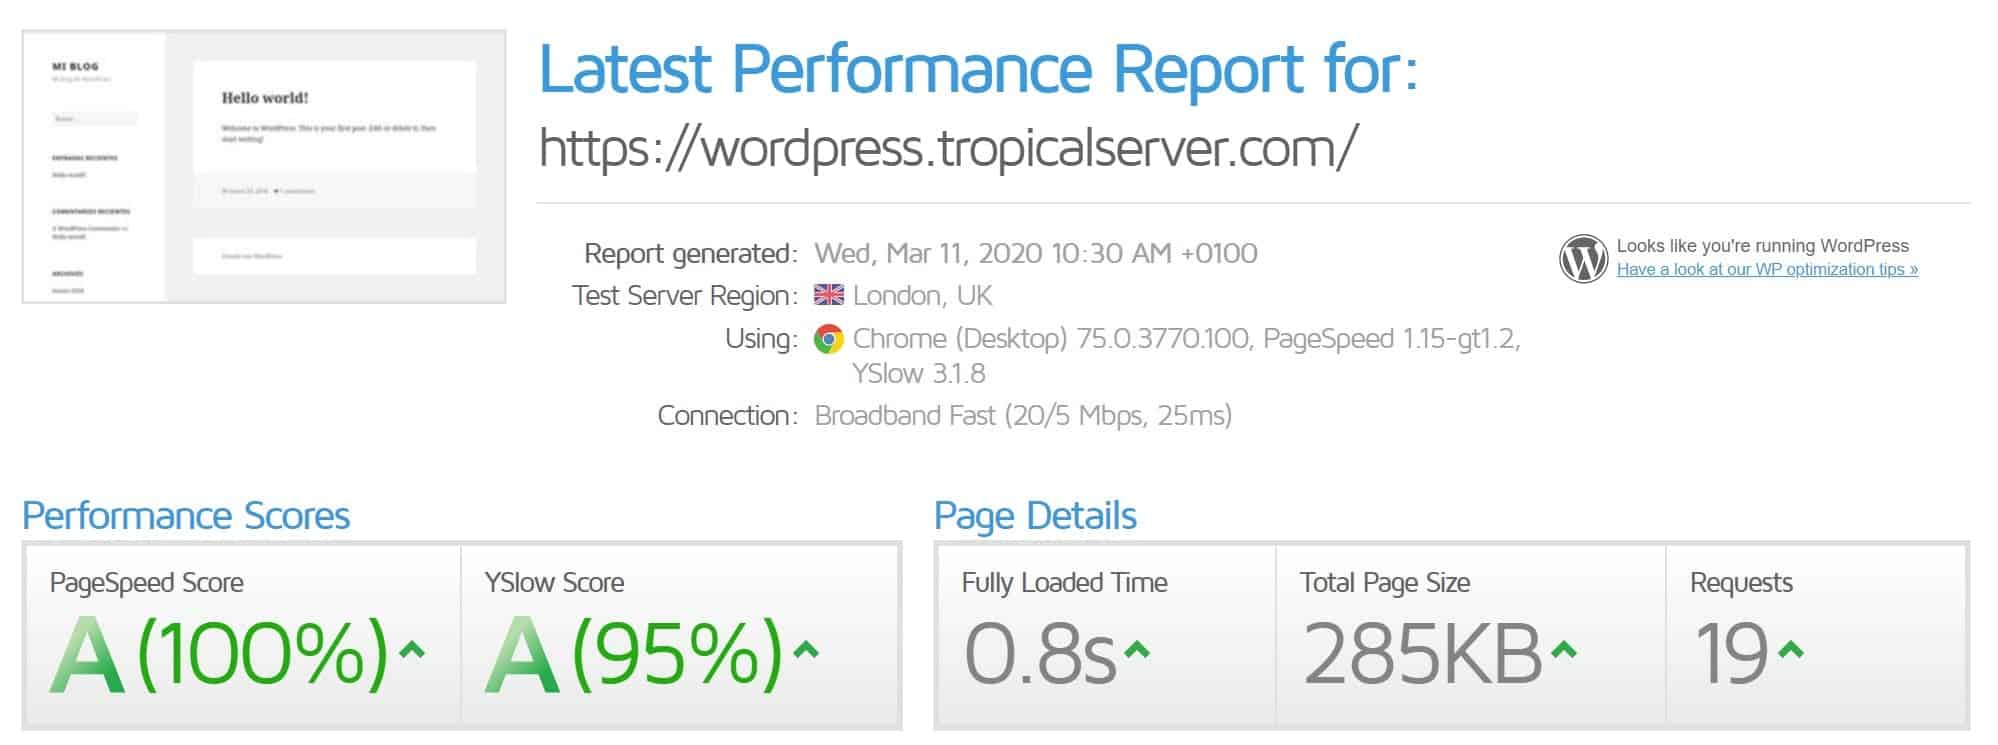 GTmetrix wordpress.tropicalserver.com